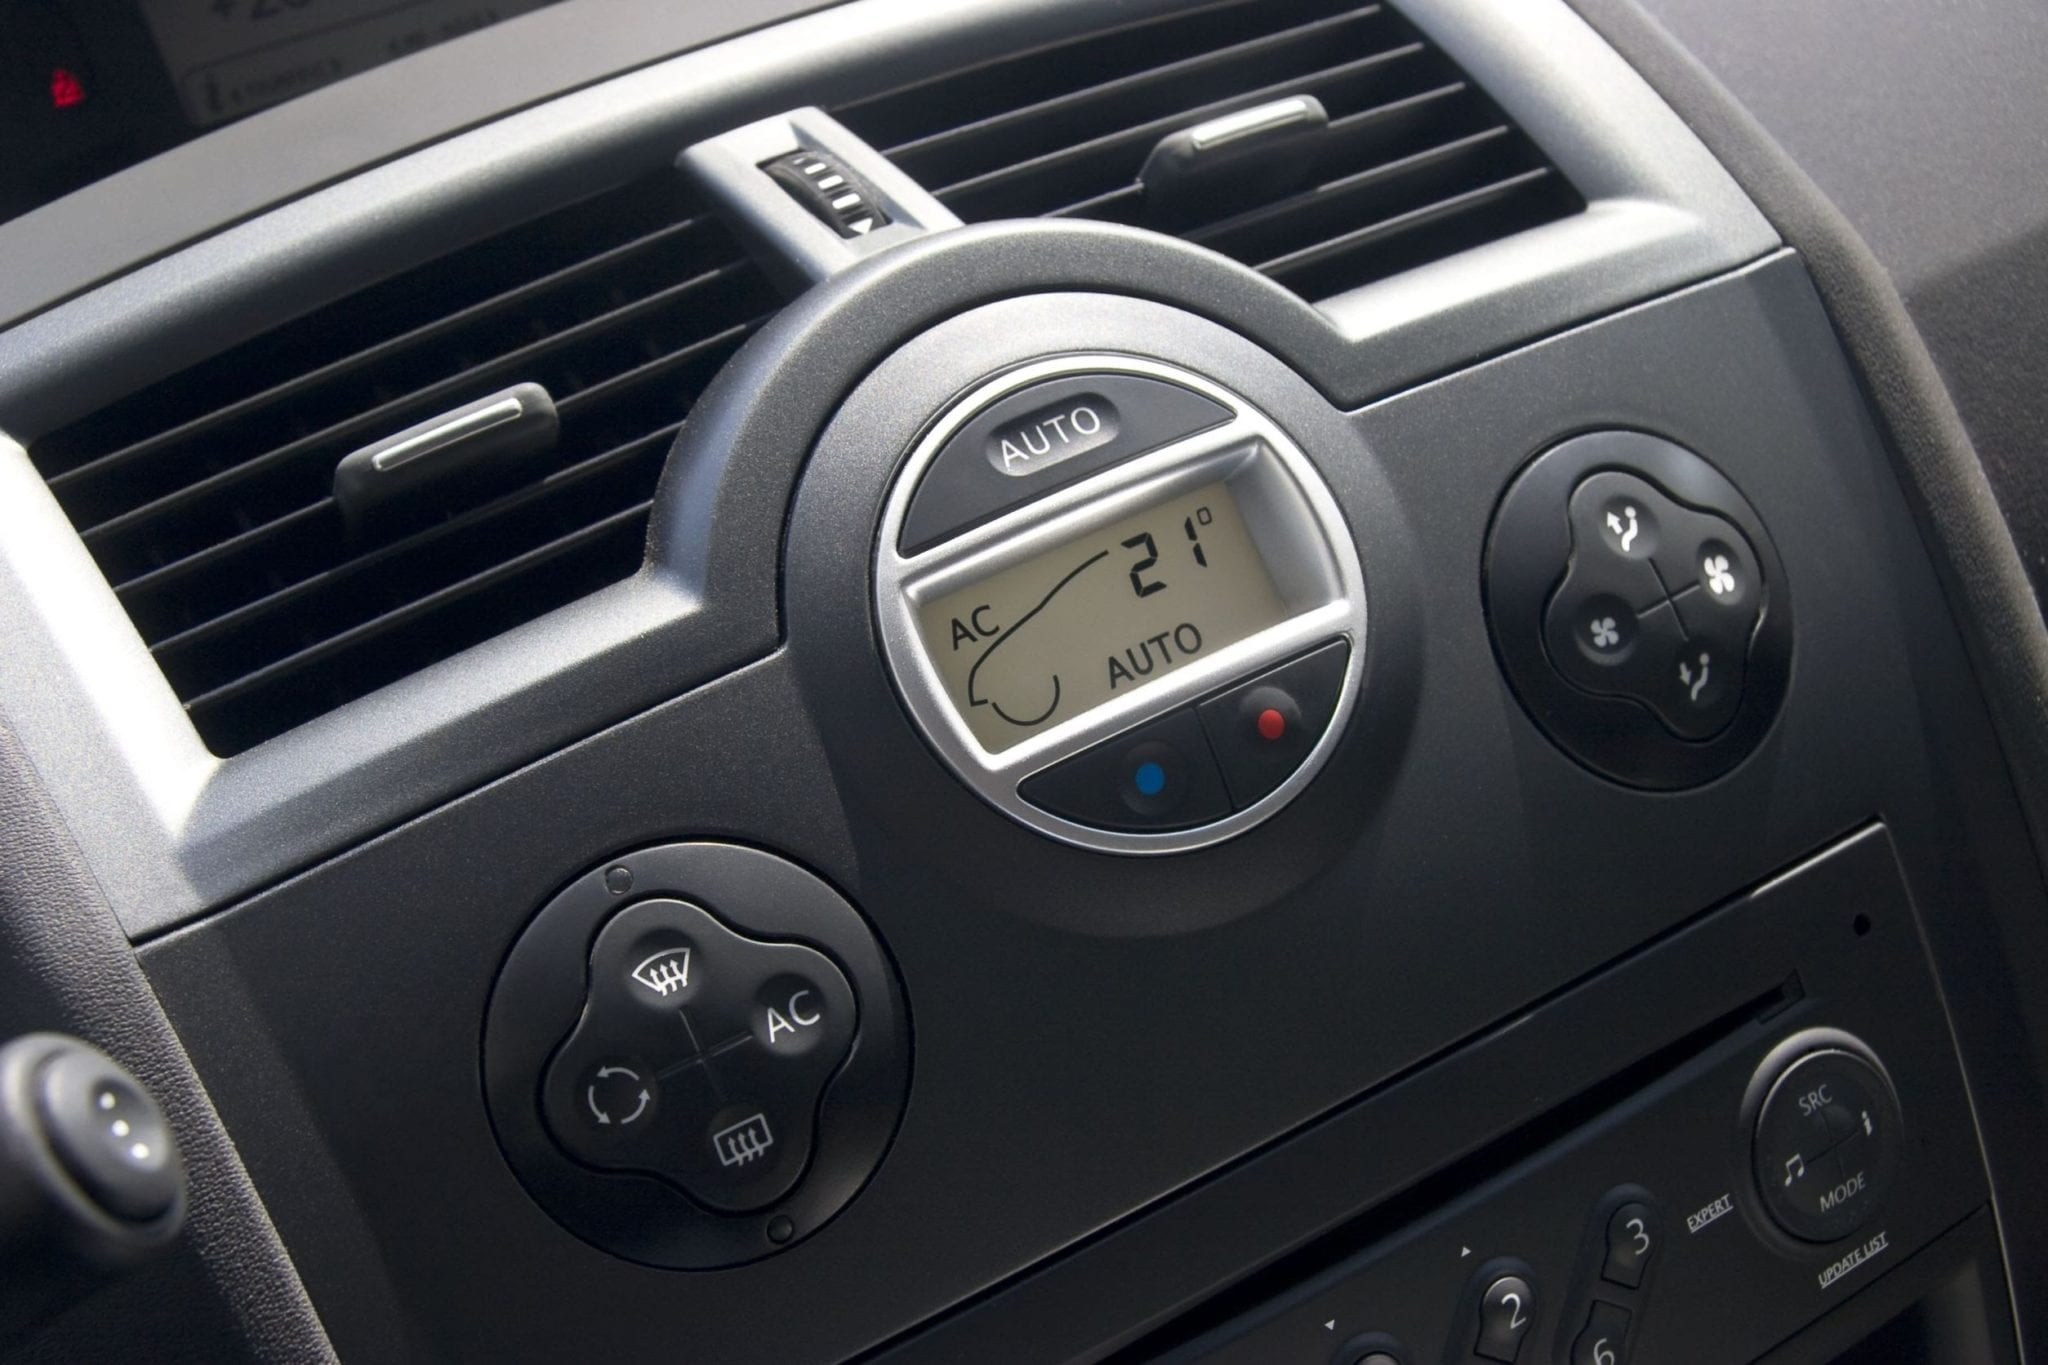 Toyota Aurion Aircon Faults